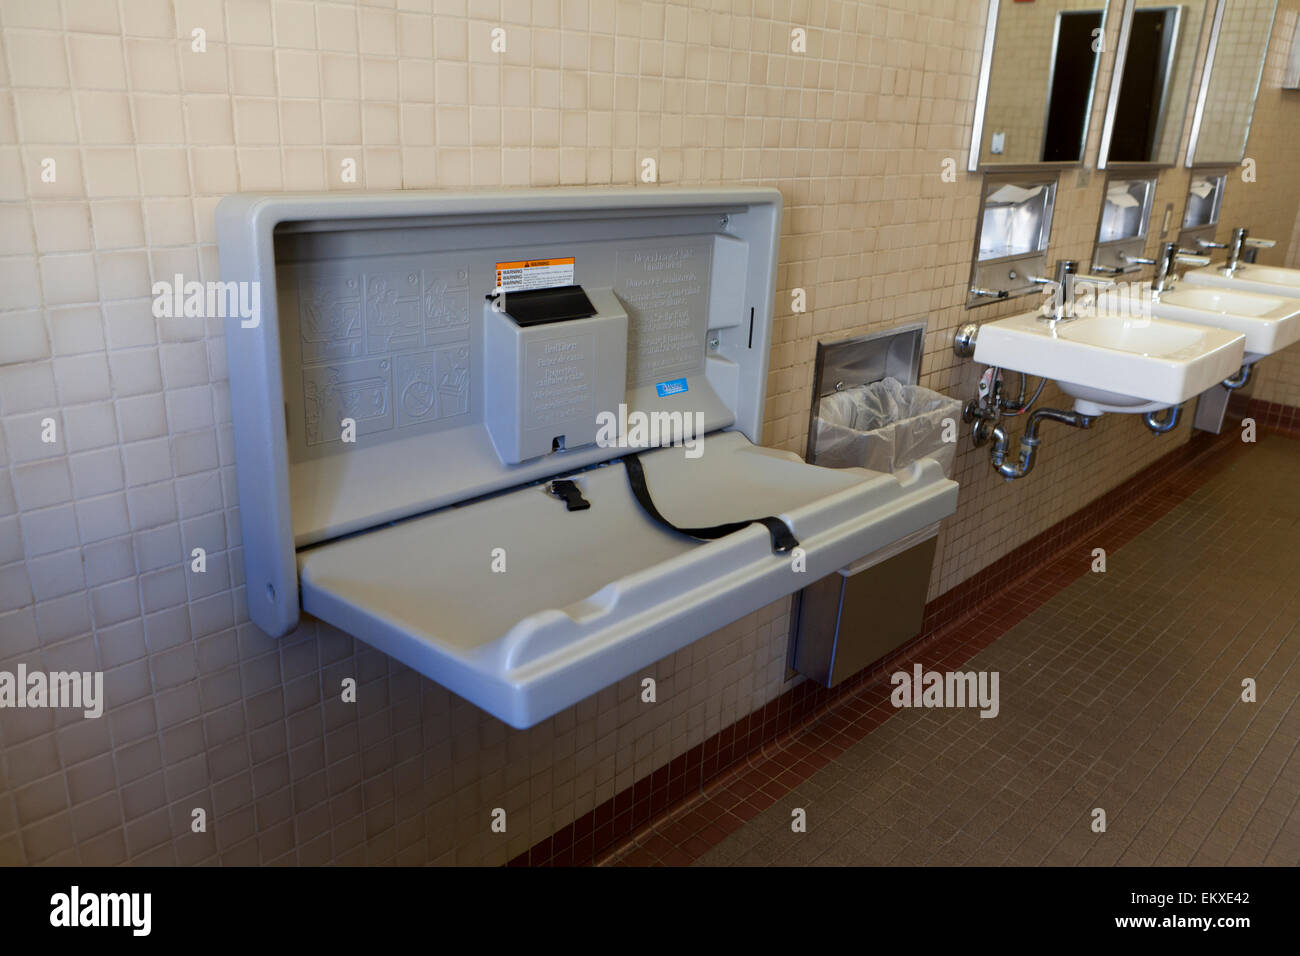 folding baby changing table in public restroom  usa stock photo  -  folding baby changing table in public restroom  usa  stock photo